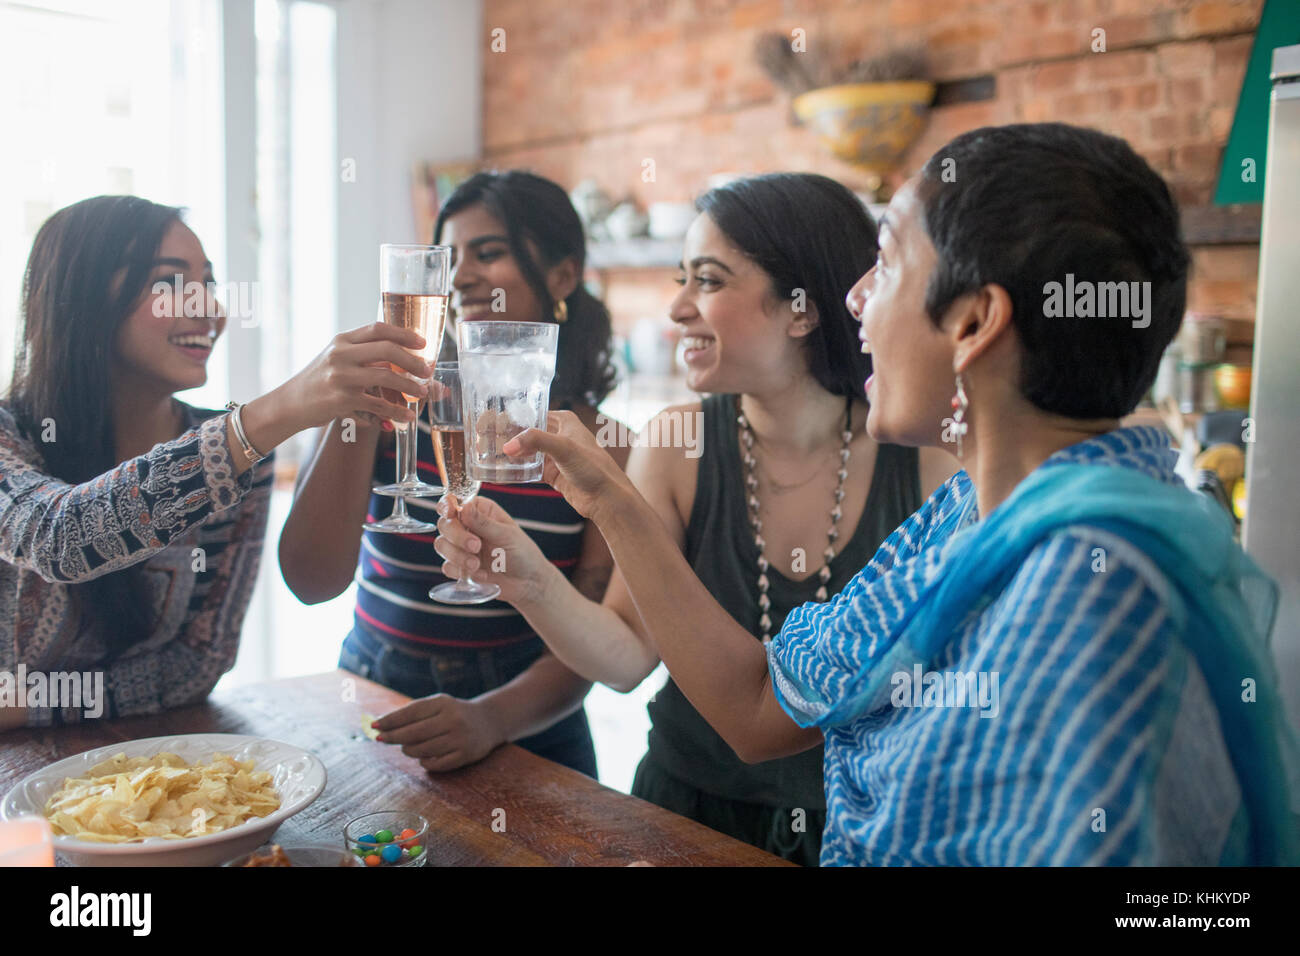 Young women making a toast at a party - Stock Image